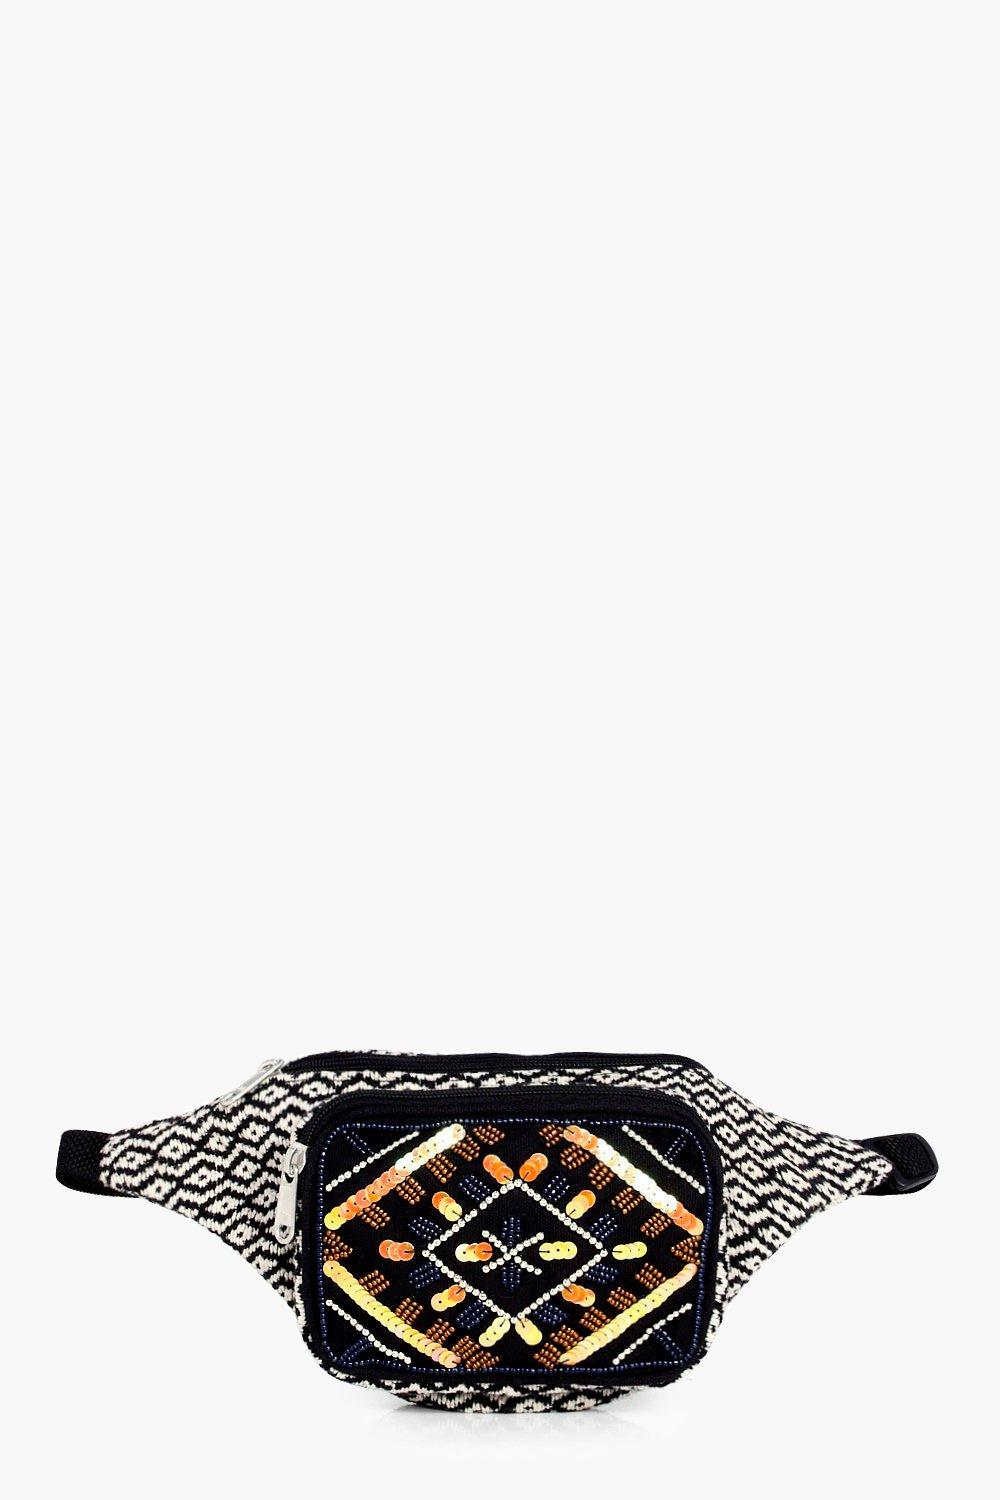 Beaded Pocket Aztec Bumbag - black - Jessica Beade